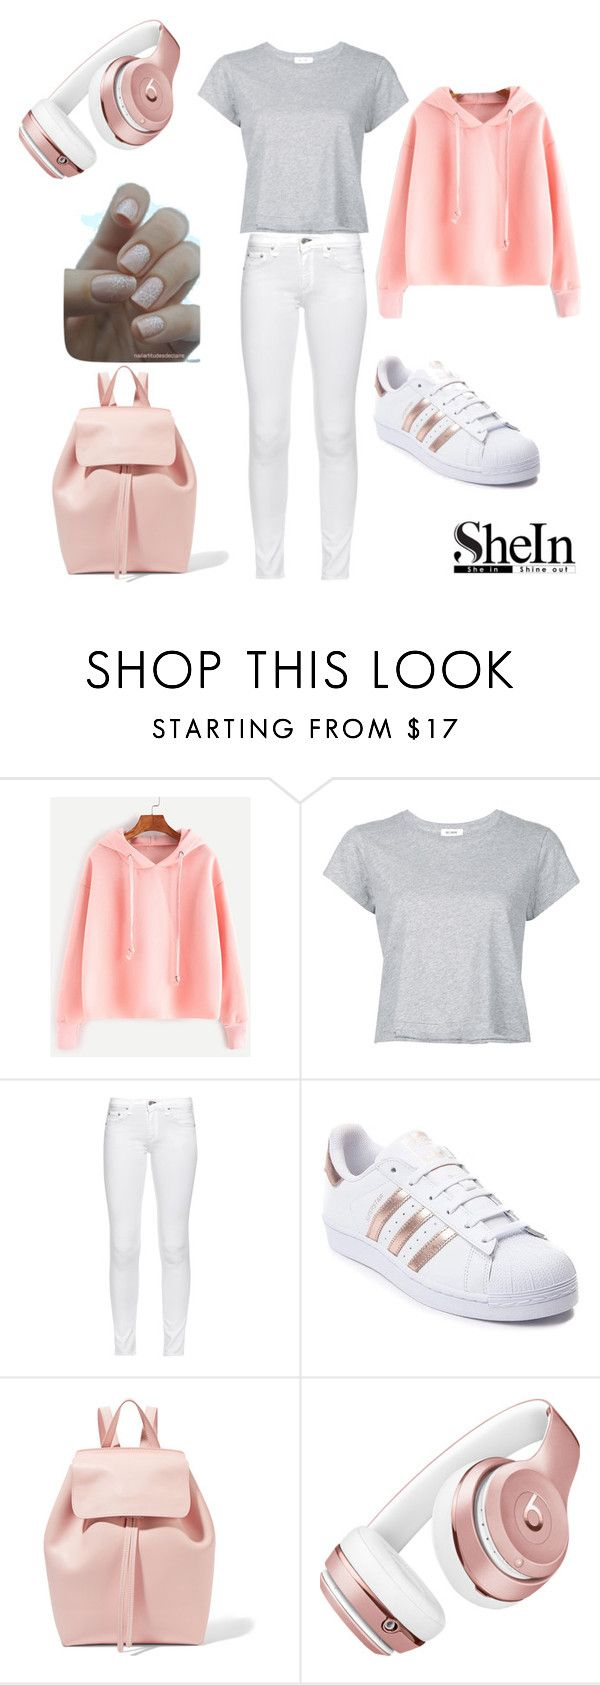 83 best Kleider images on Pinterest | Teen fashion, Casual wear and ...